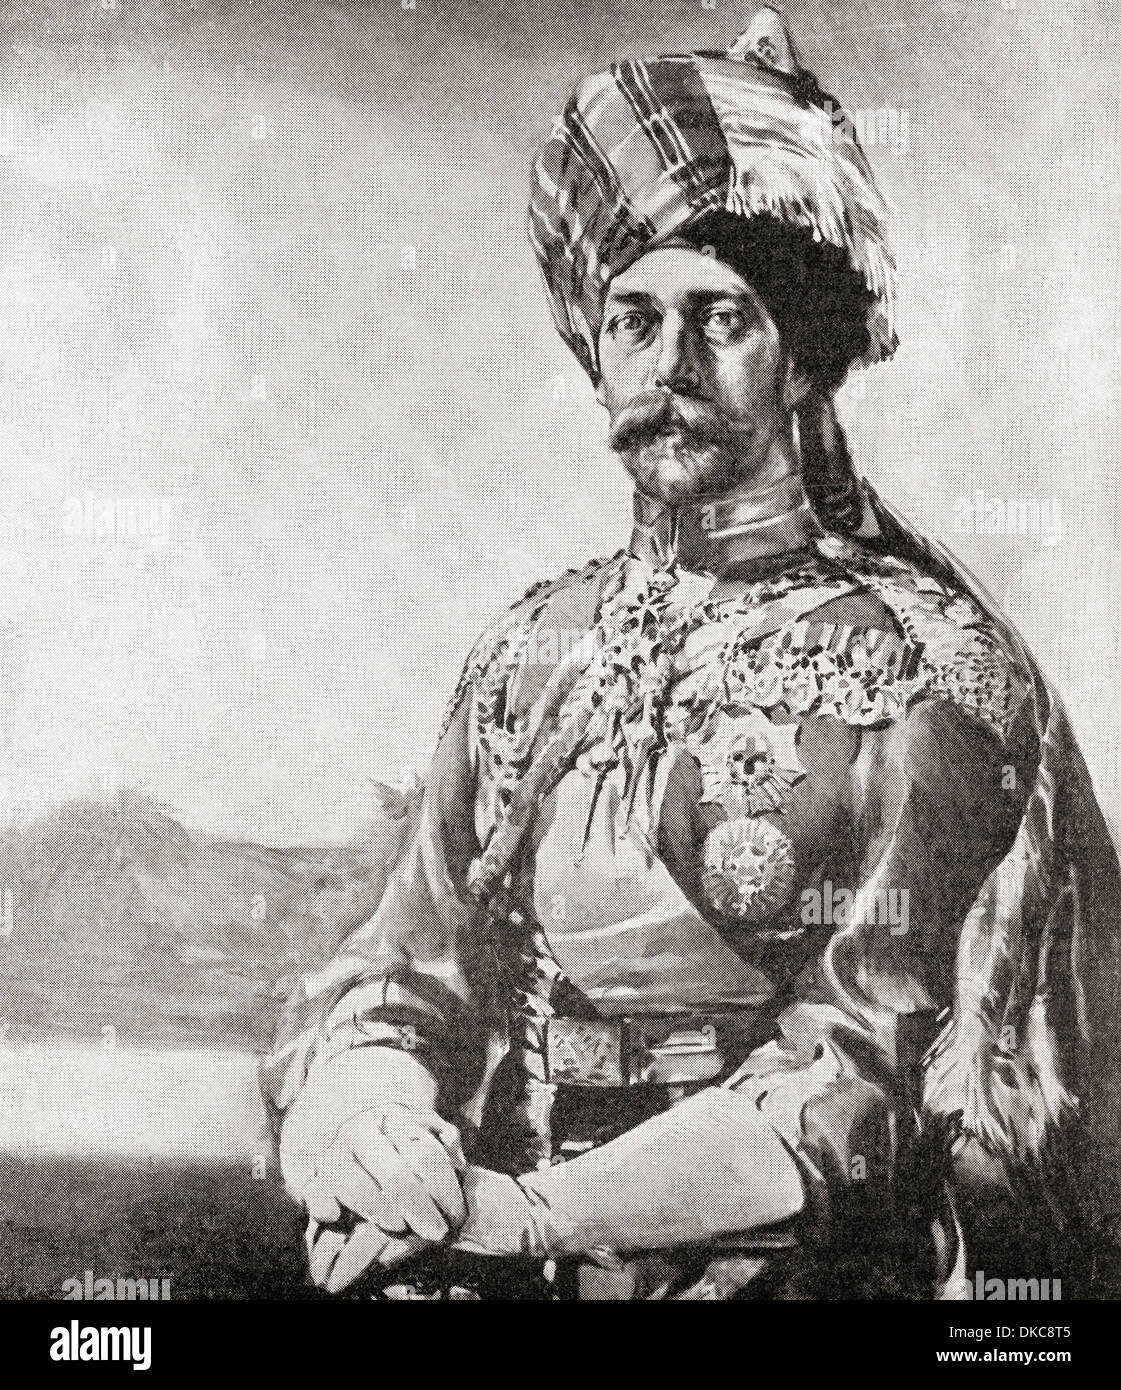 The King Emperor as Colonel-In-Chief, Lancers, Indian Army, 1914. King George V, 1865-1936 in military uniform during the First - Stock Image